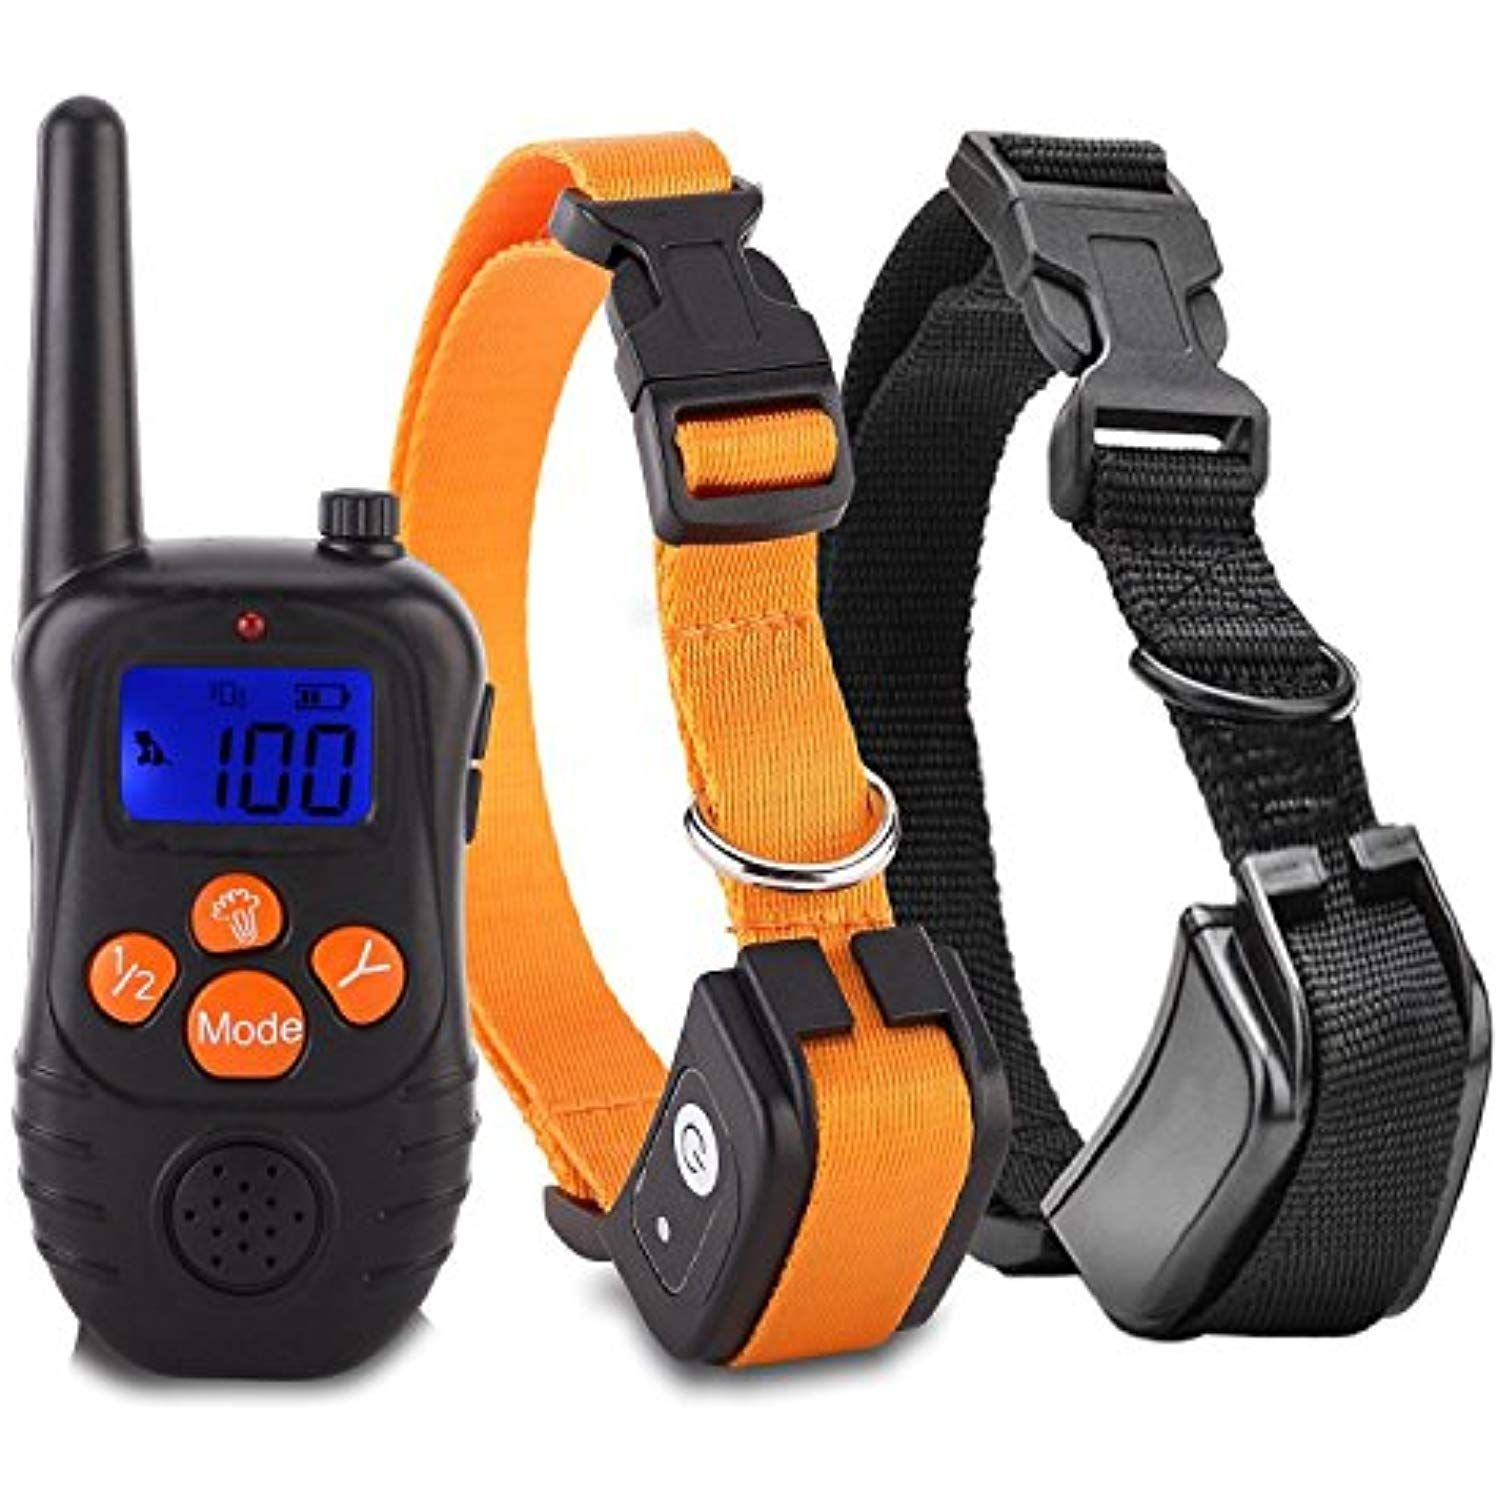 Igingko Dog Training Collar 2018 Upgraded 1000ft Range Remote 100